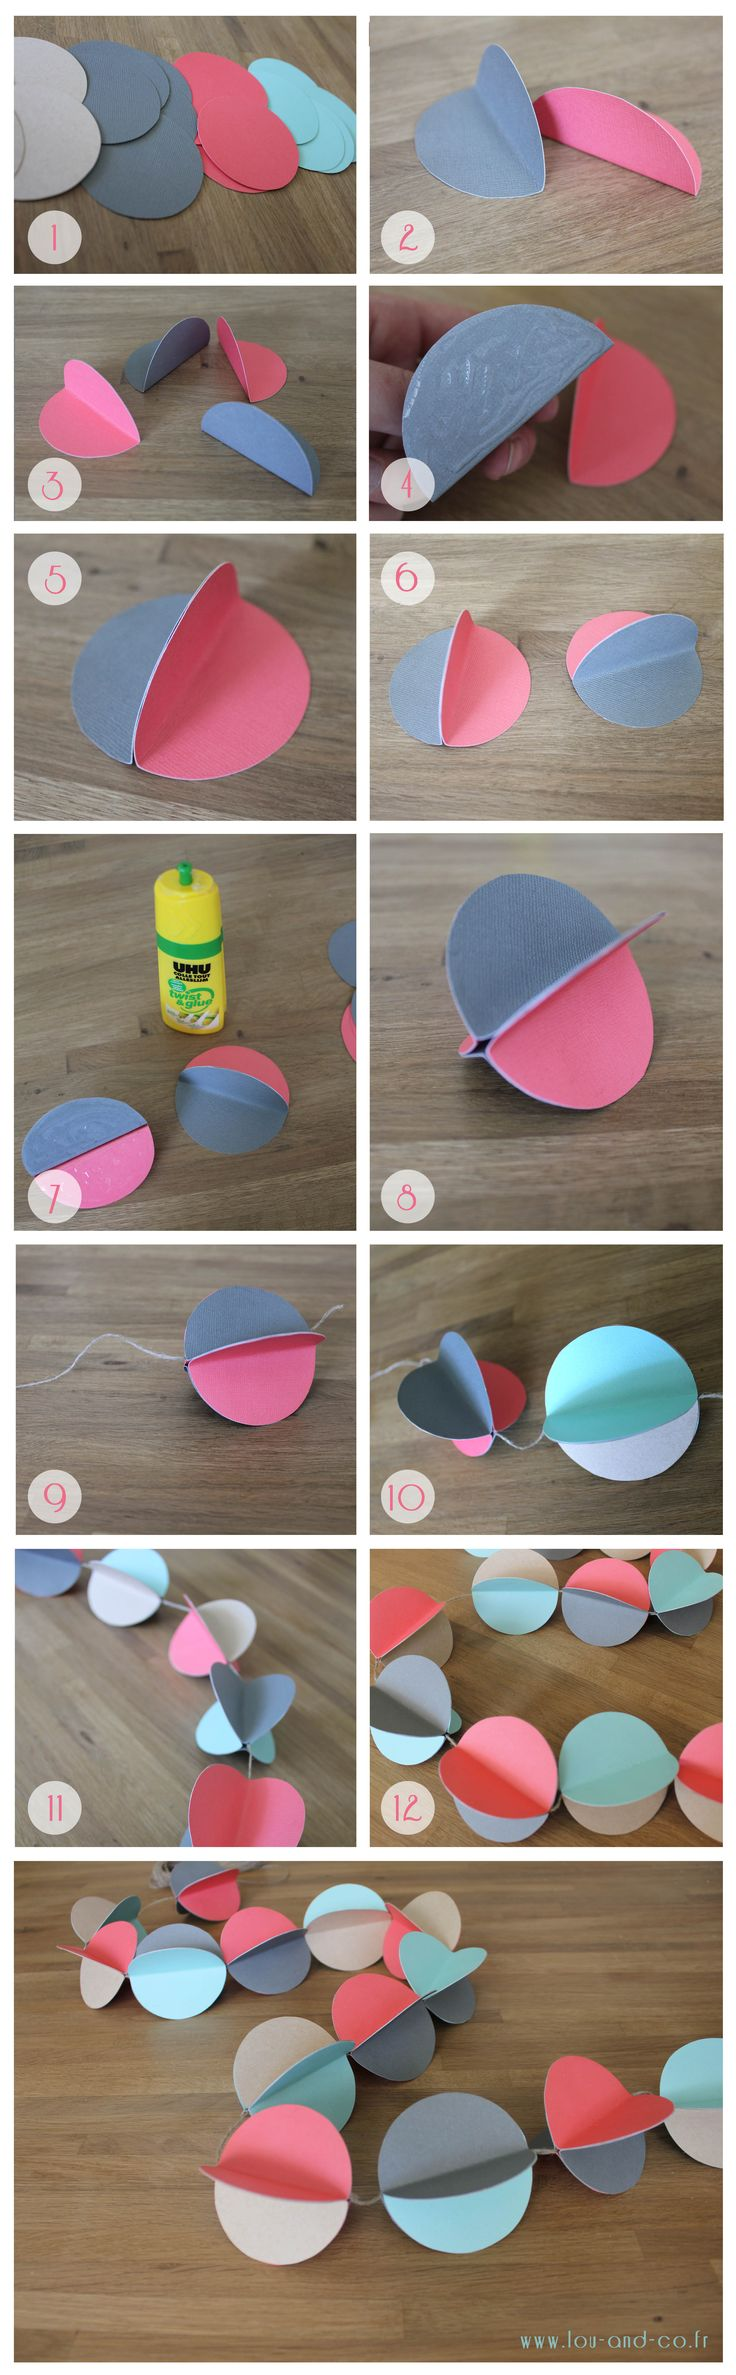 Guirlande en papier DIY, this would be cute with holiday colors.